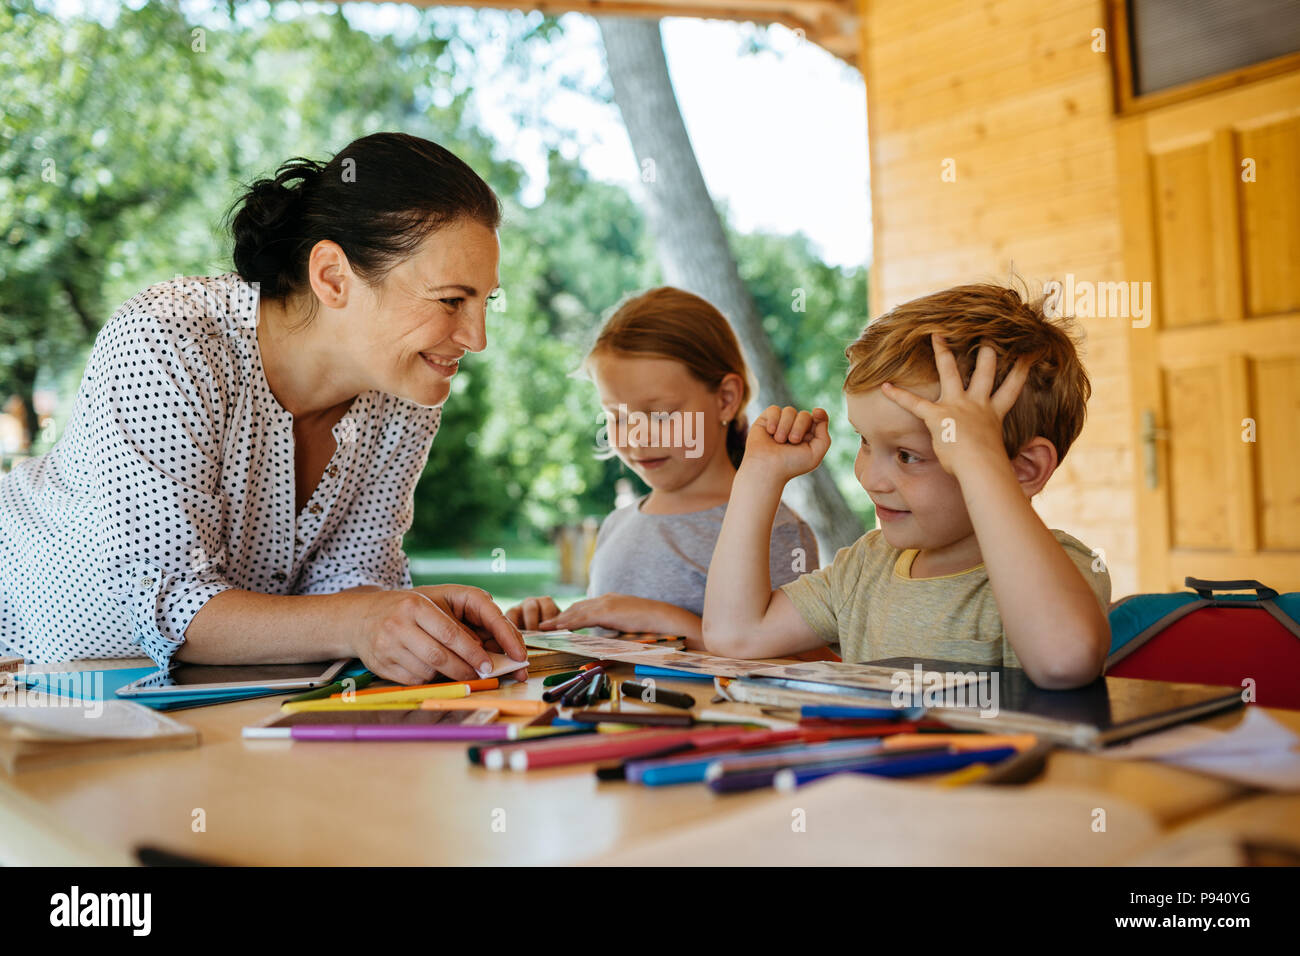 Teacher and students reading books together. Friendly teacher listening to a young boy reading and explaining. - Stock Image